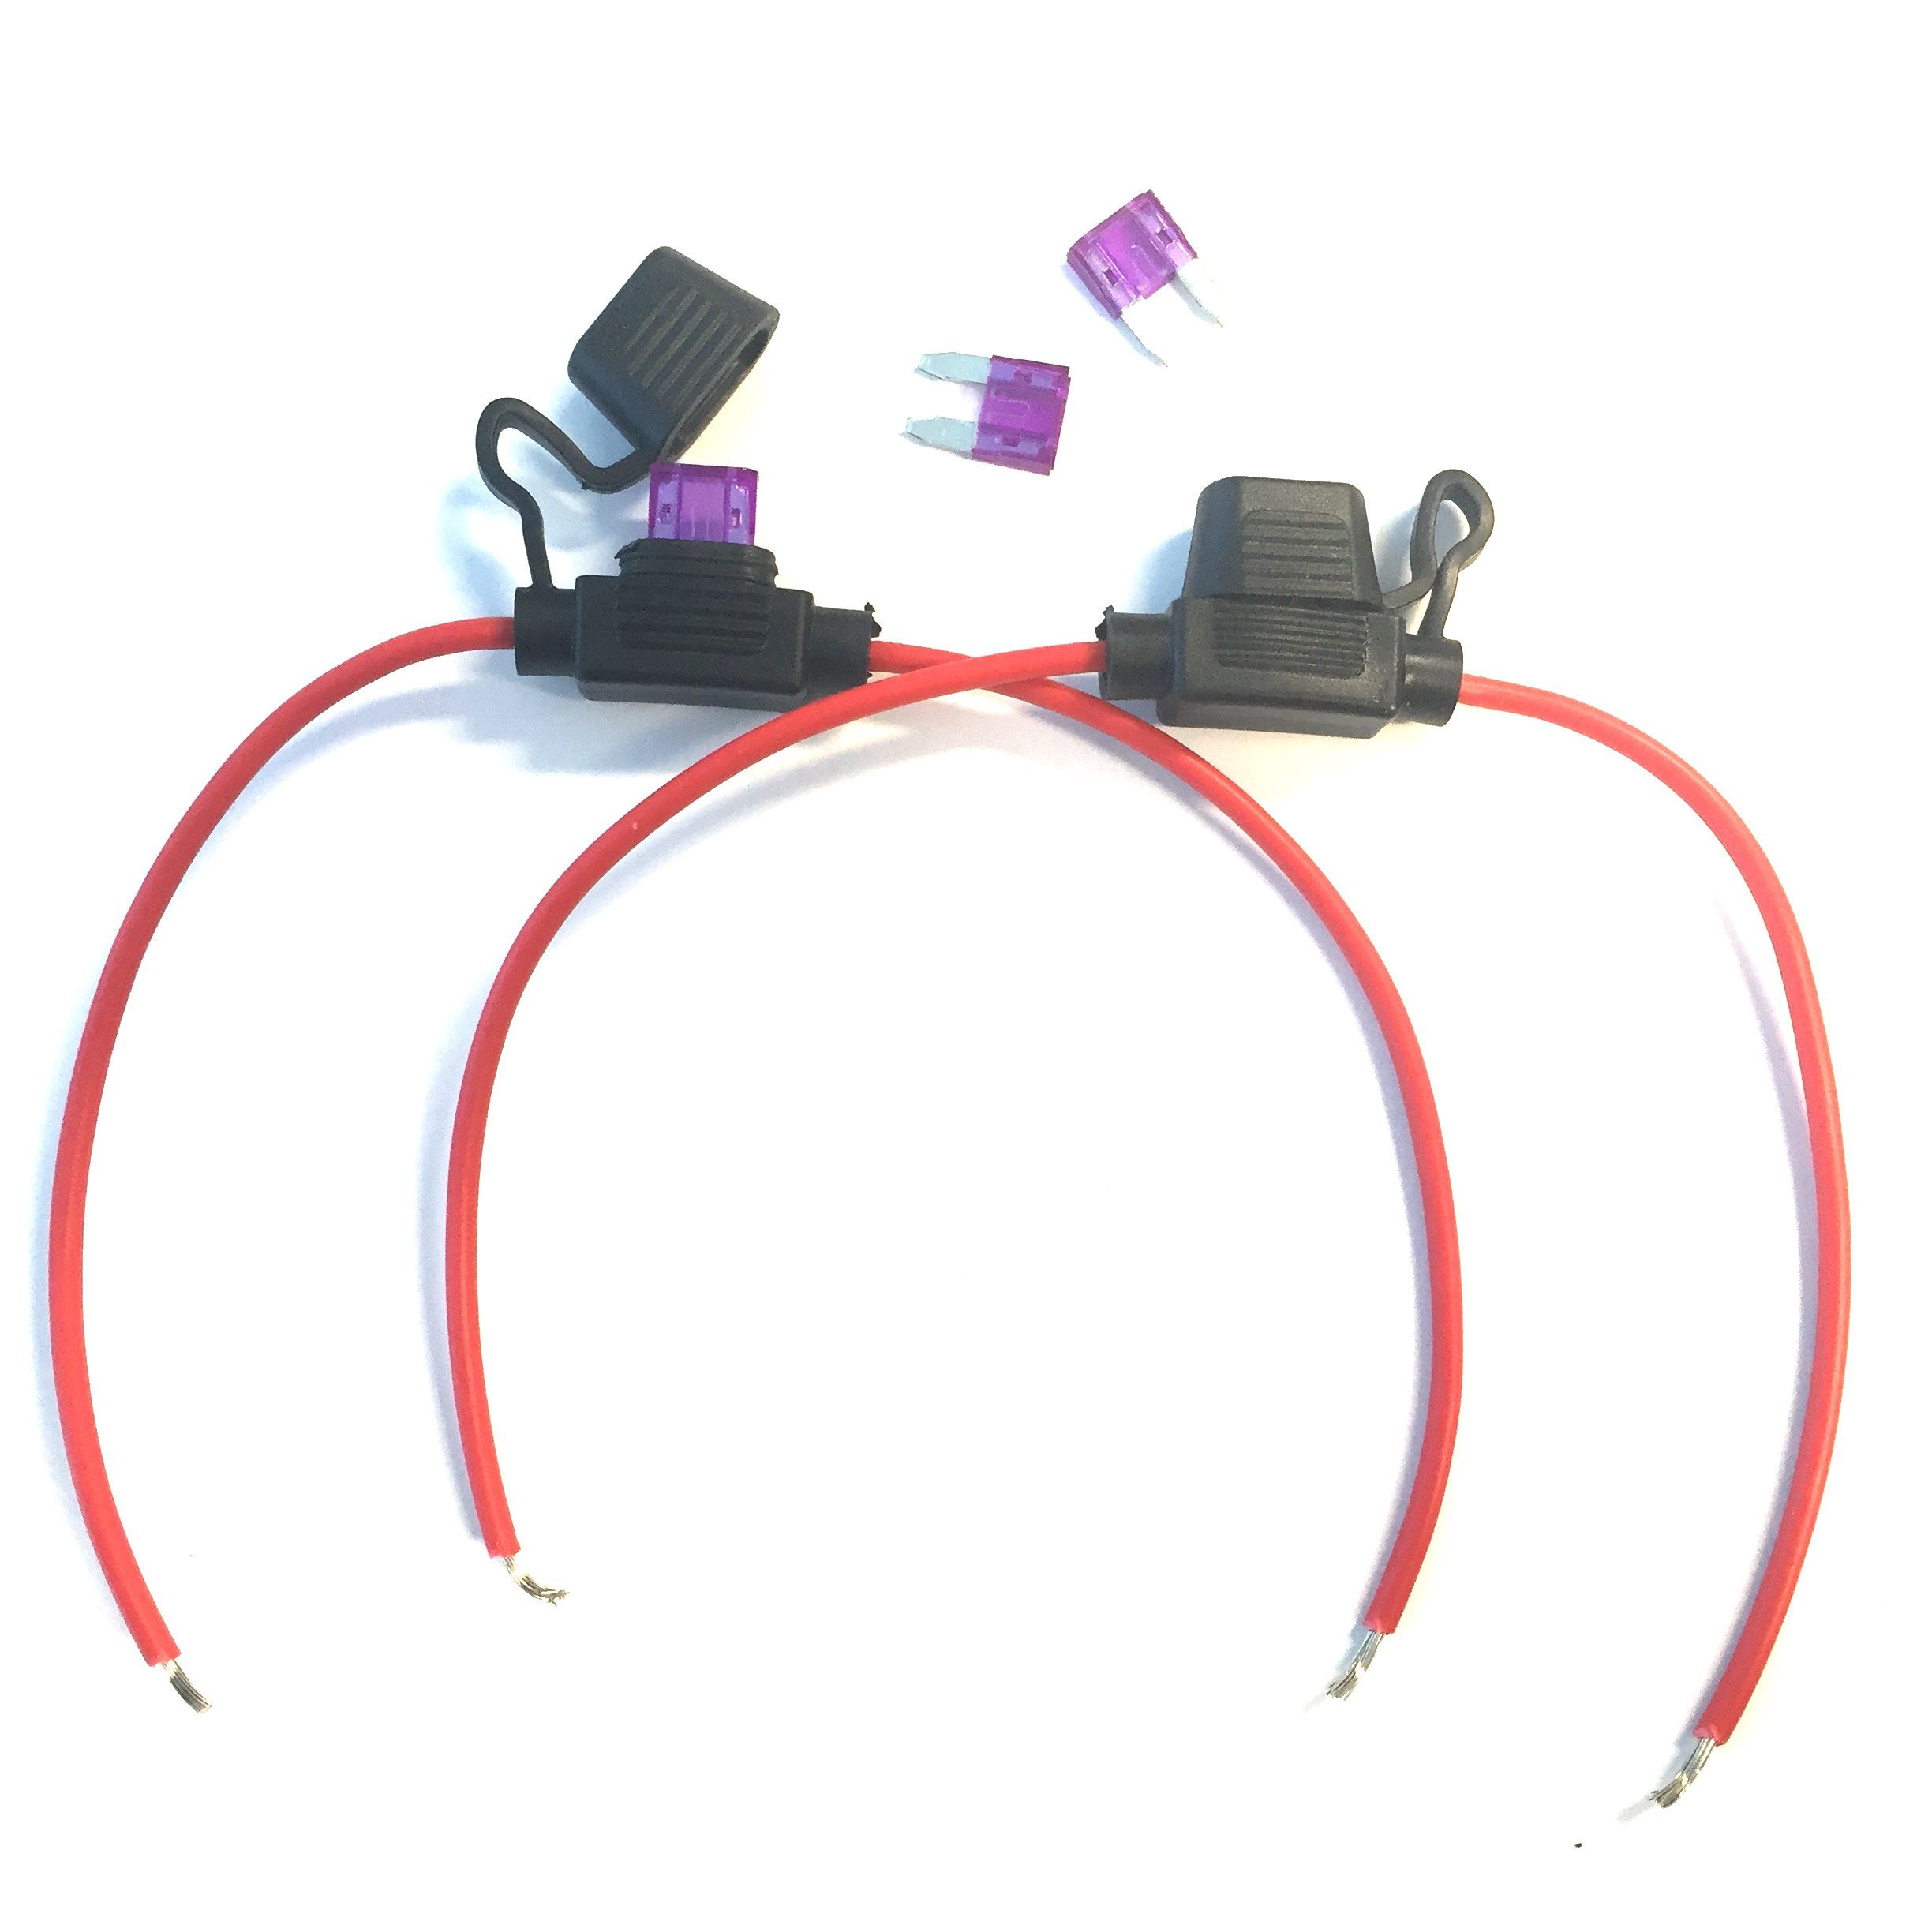 Inline Blade Fuse Holder Cable Leads Fuse Protection Kit - (for auto 12V 24V) 3 Amp